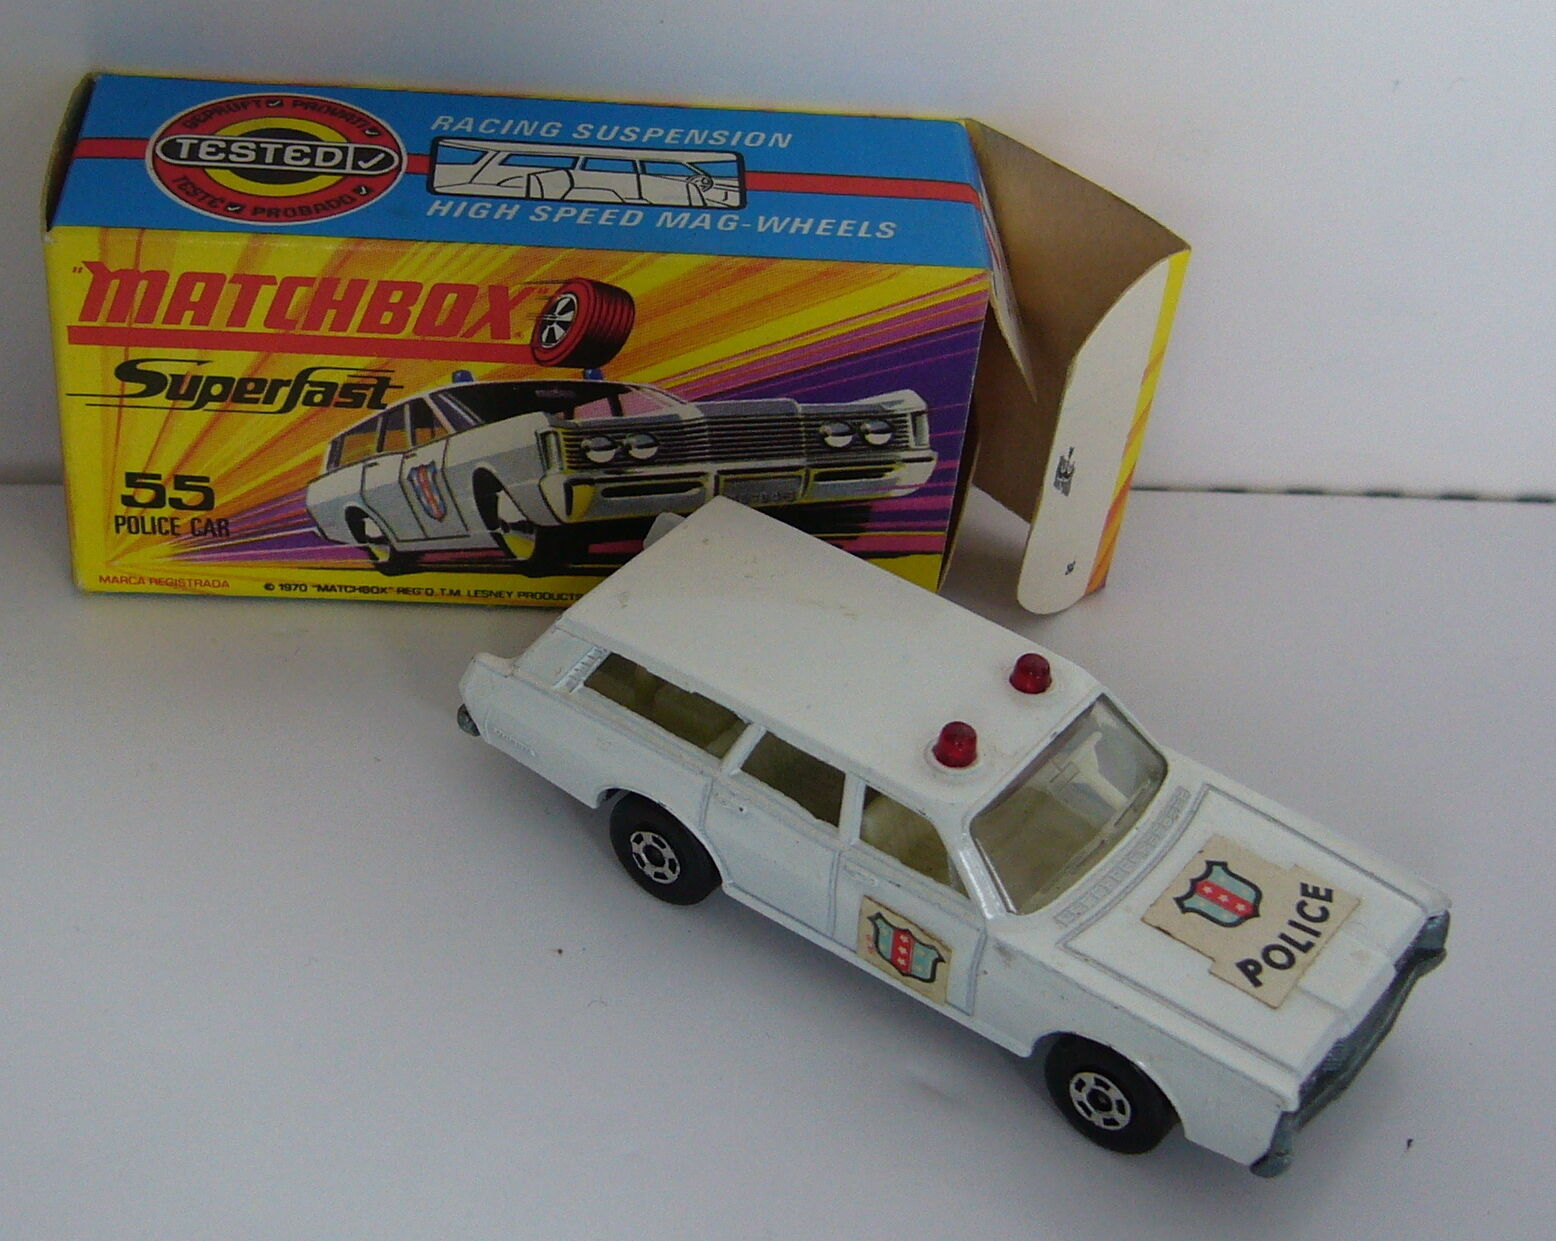 Matchbox-Superfast-MB 55 Police Car with Crest White bluee-Original Packaging